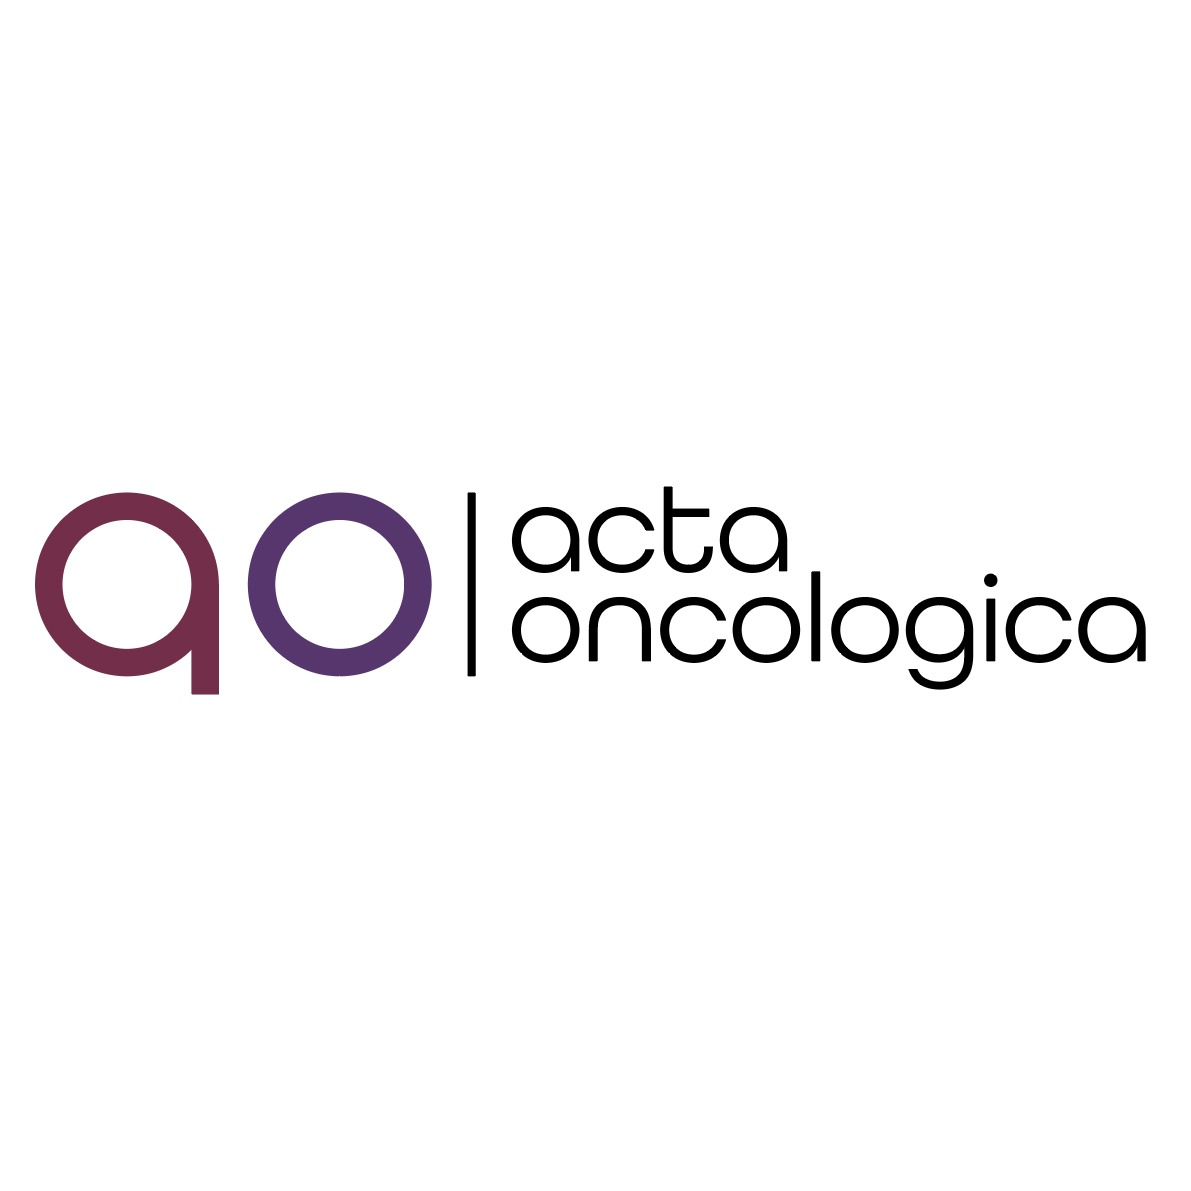 Acta Oncologica logotyp